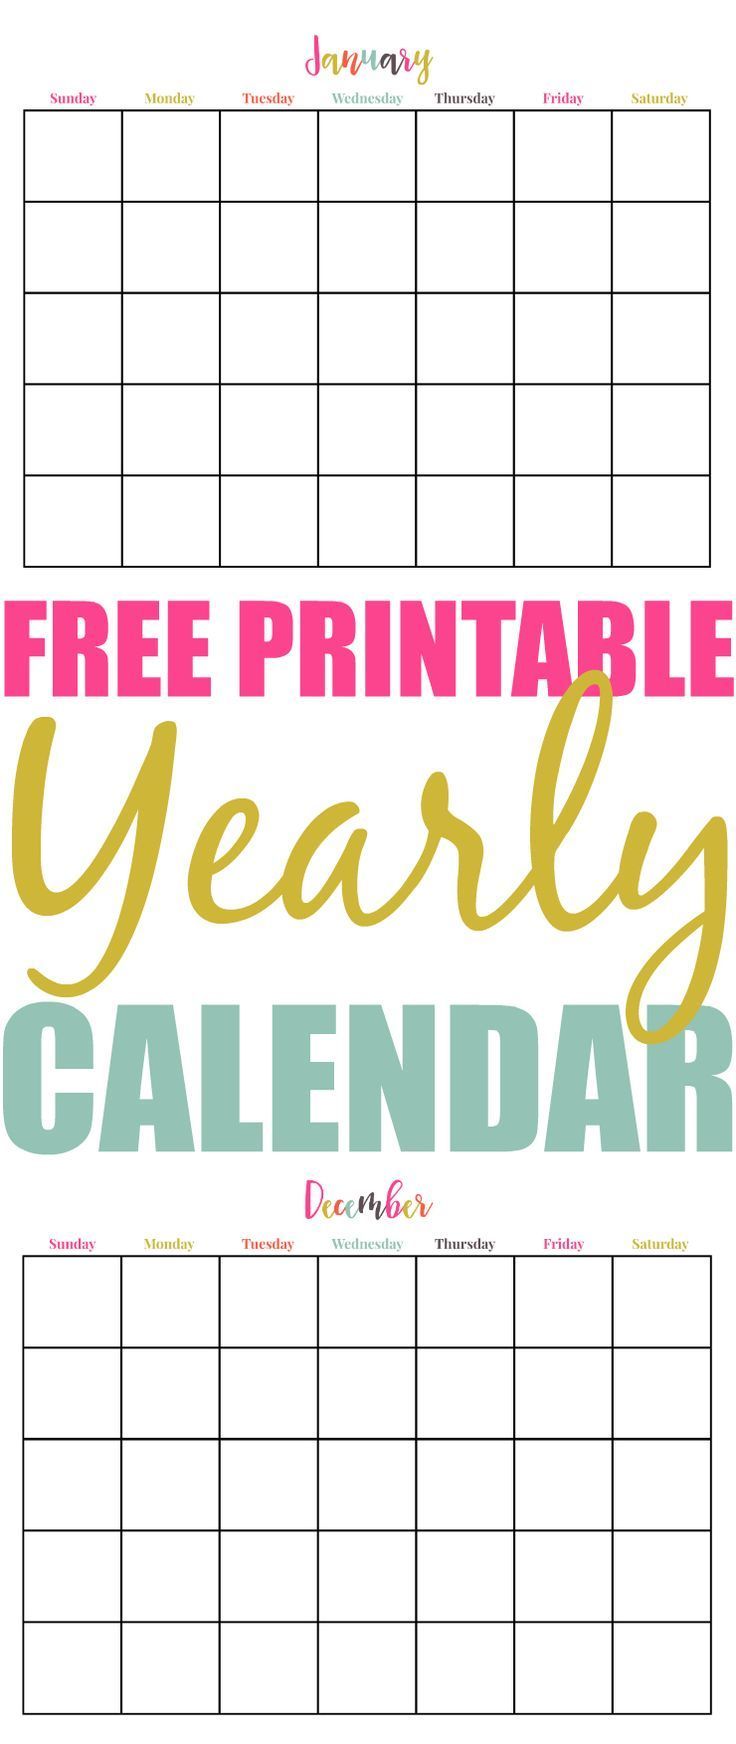 Free Printable Yearly Calendar  Printable Yearly Calendar Yearly